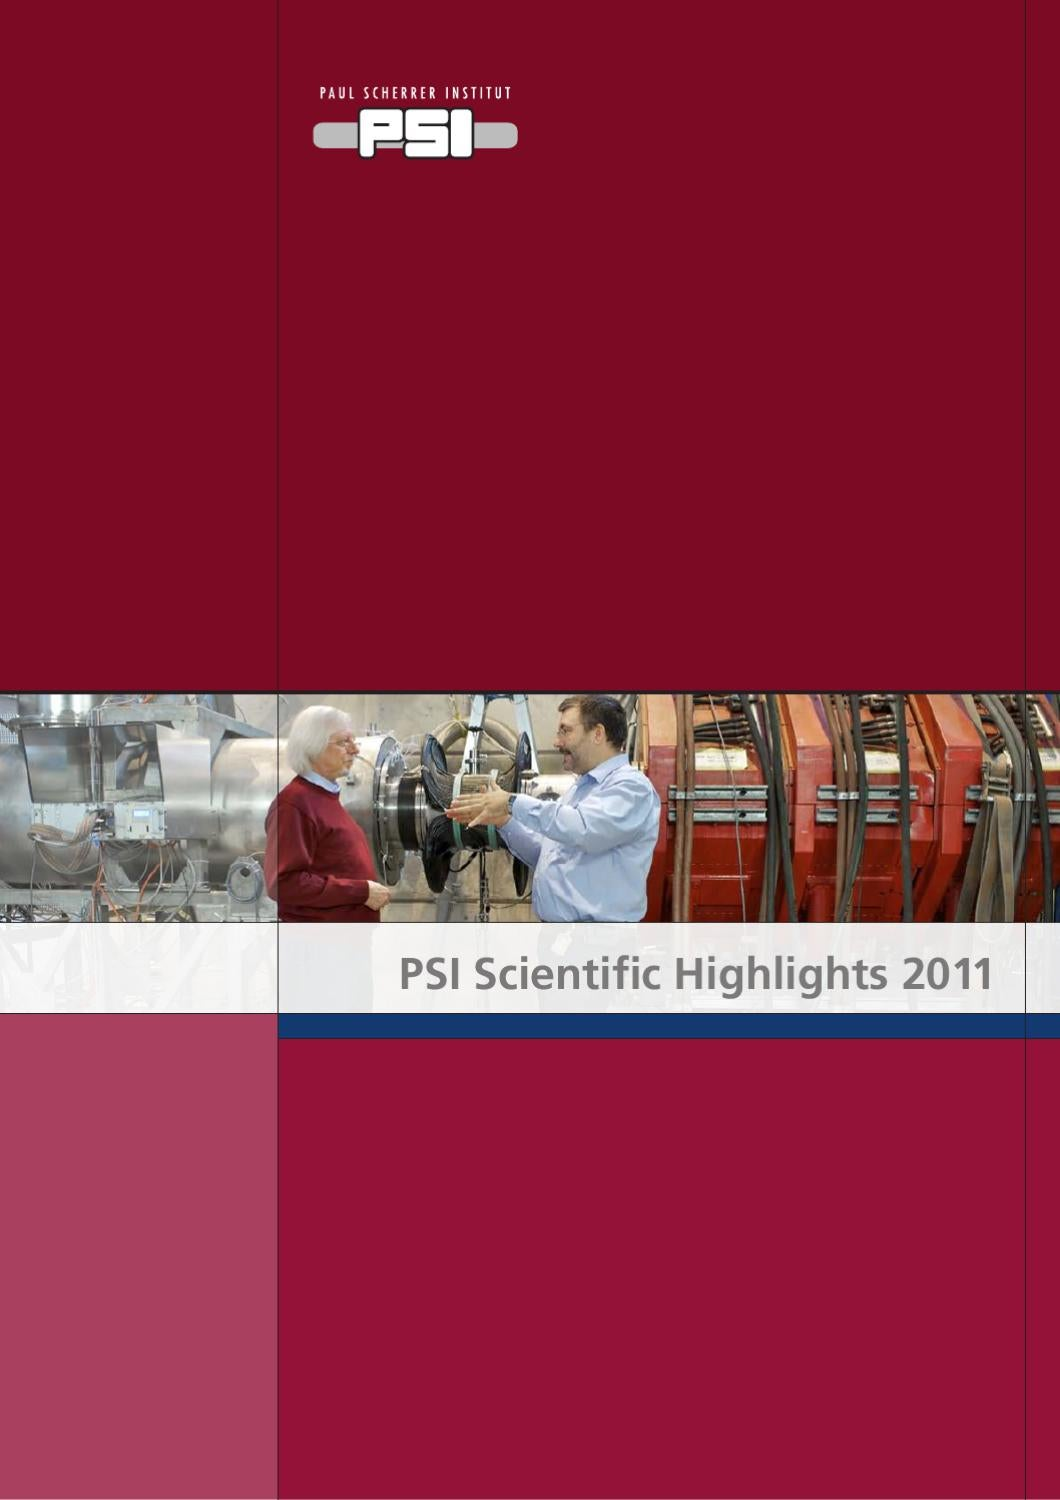 Scientific Highlights 2011 by Paul Scherrer Institut - issuu